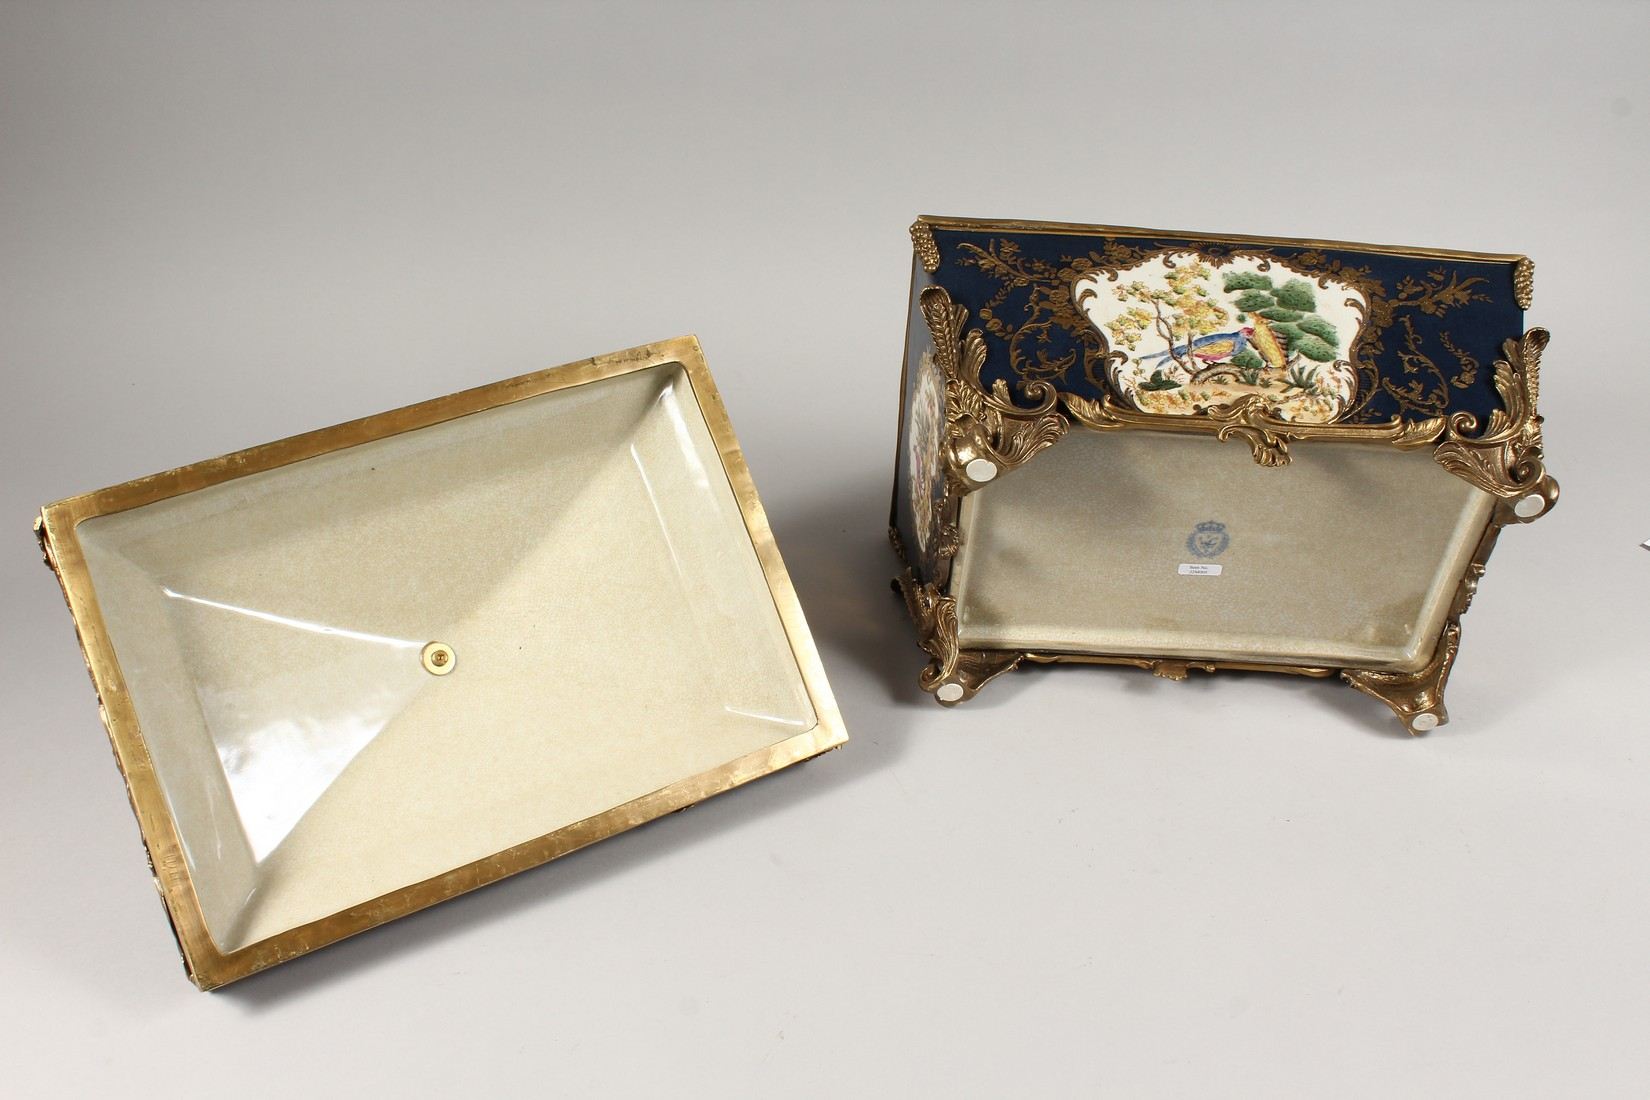 A DECORATIVE PORCELAIN AND ORMOLU MOUNTED SEVRES STYLE CASKET AND COVER. 15ins long - Image 4 of 5